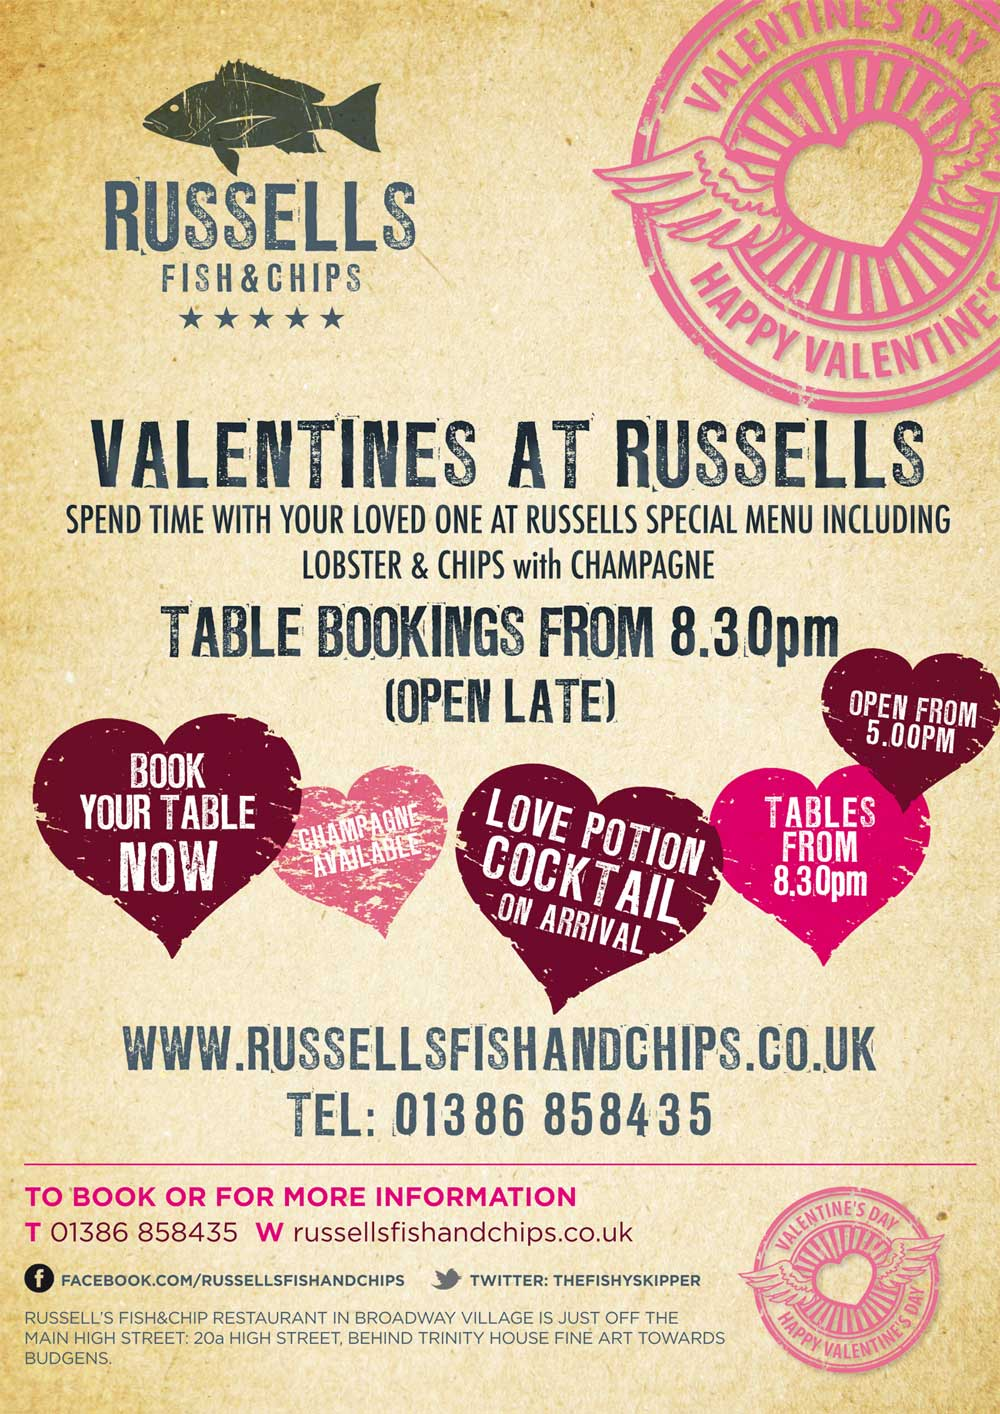 Russells-Fisha-ann-chips-Valentines-poster-2014